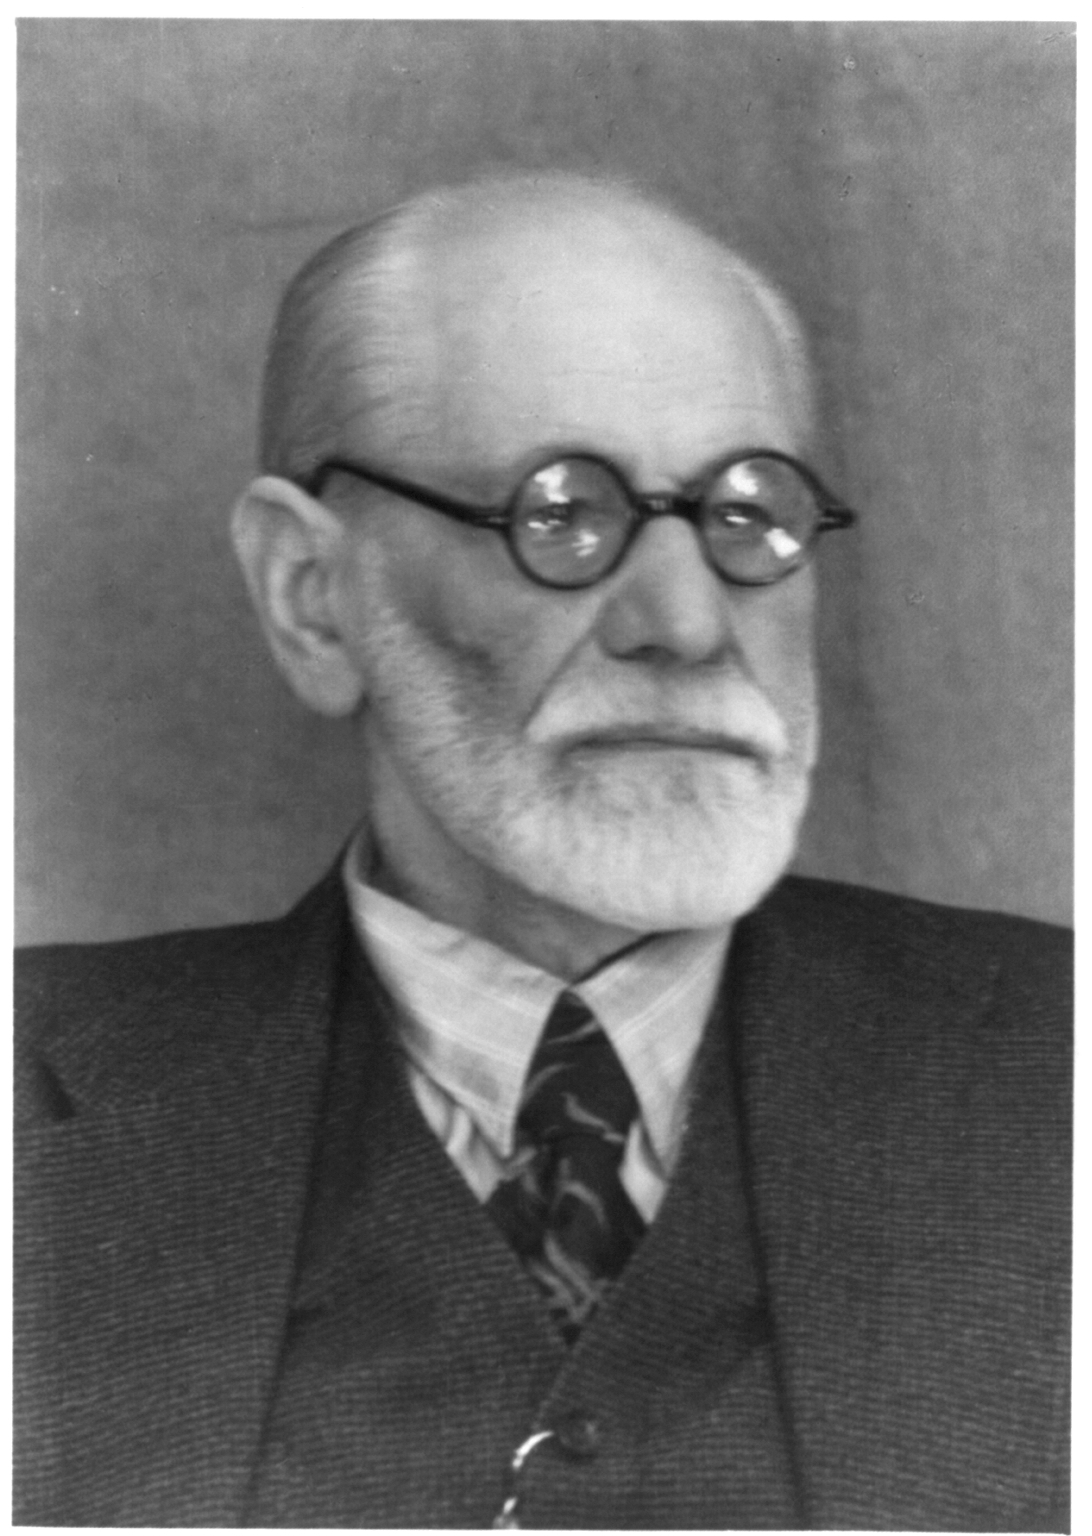 an introduction to the theory by sigmund freud Sigmund freud's work and theories helped shape our views of childhood, personality, memory, sexuality and therapy other major thinkers have contributed work that grew out of freud's legacy, while others developed new theories out of opposition to his ideas.